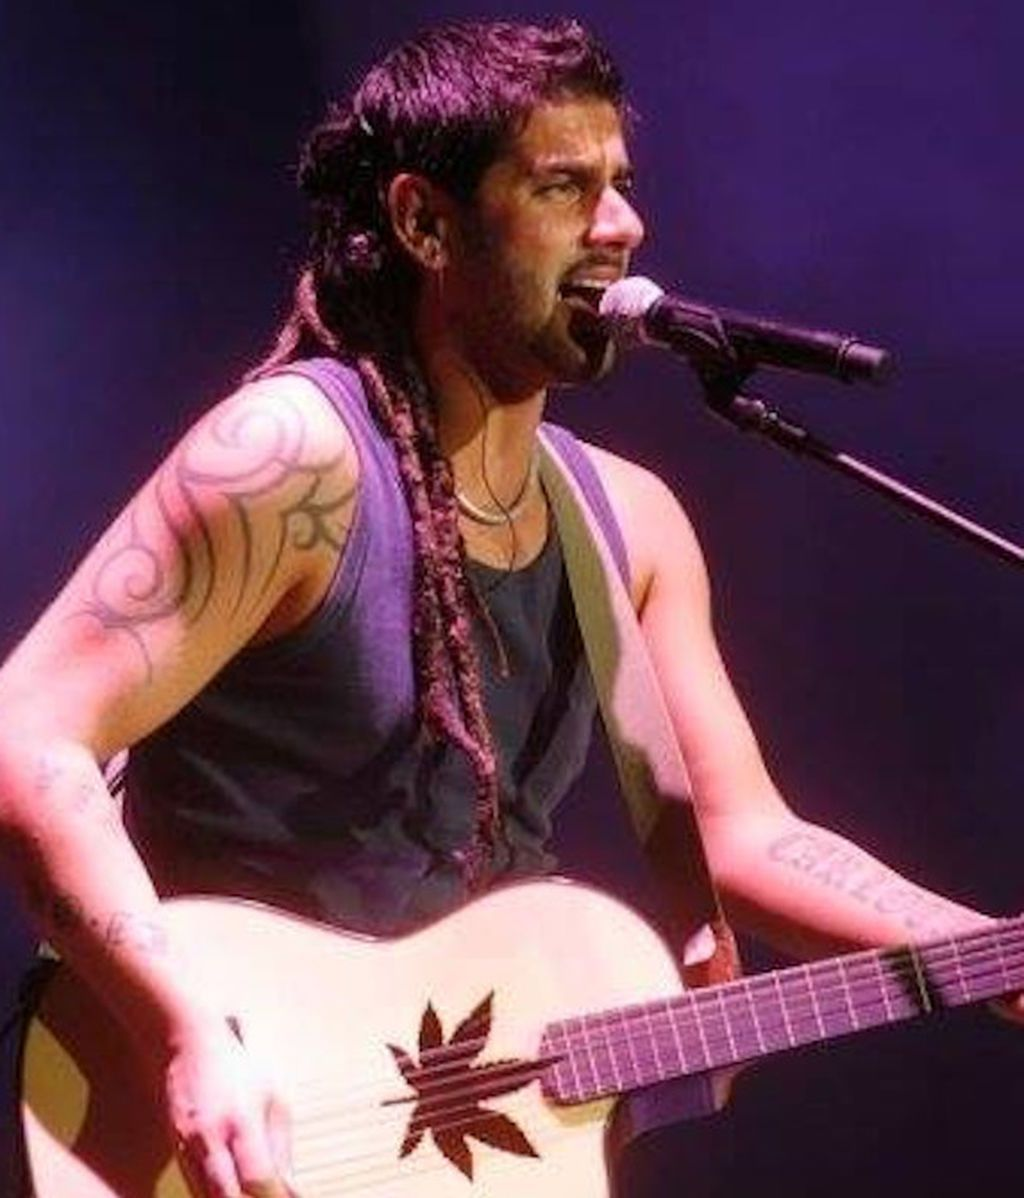 Melendi con su guitarra Francisco Bros